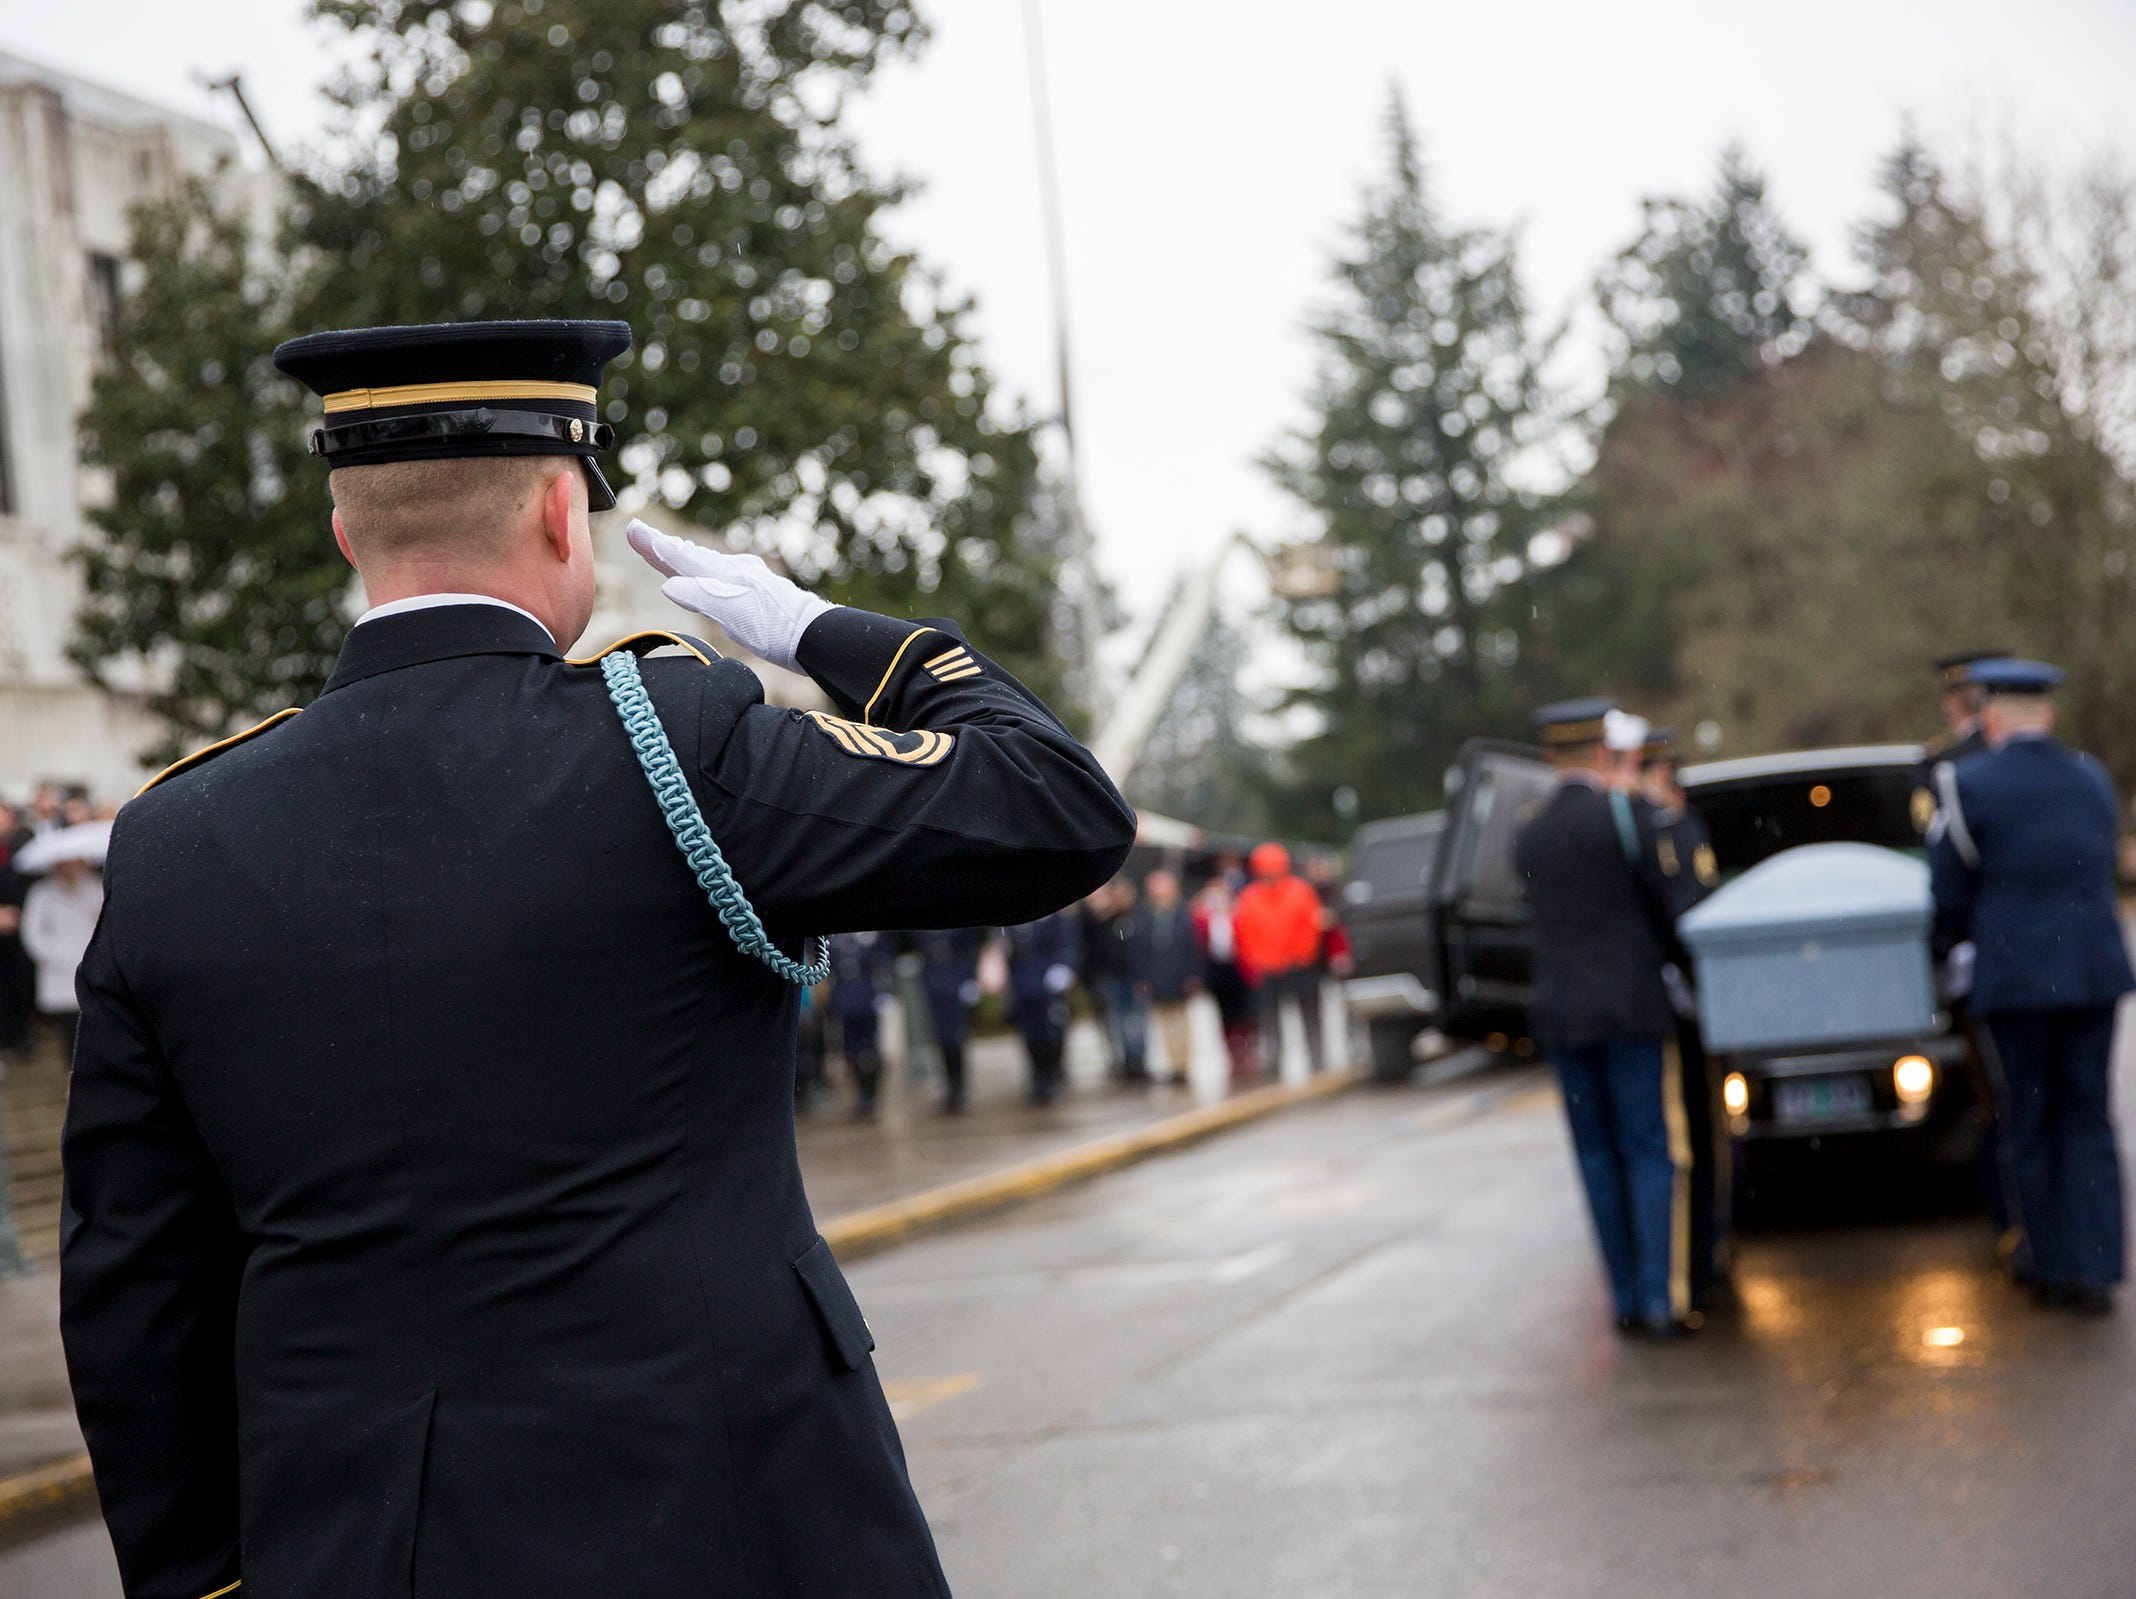 The casket is saluted as it is placed in the back of the hearse following the state funeral for Secretary of State Dennis Richardson at the Oregon State Capitol in Salem on Wednesday, March 6, 2019.